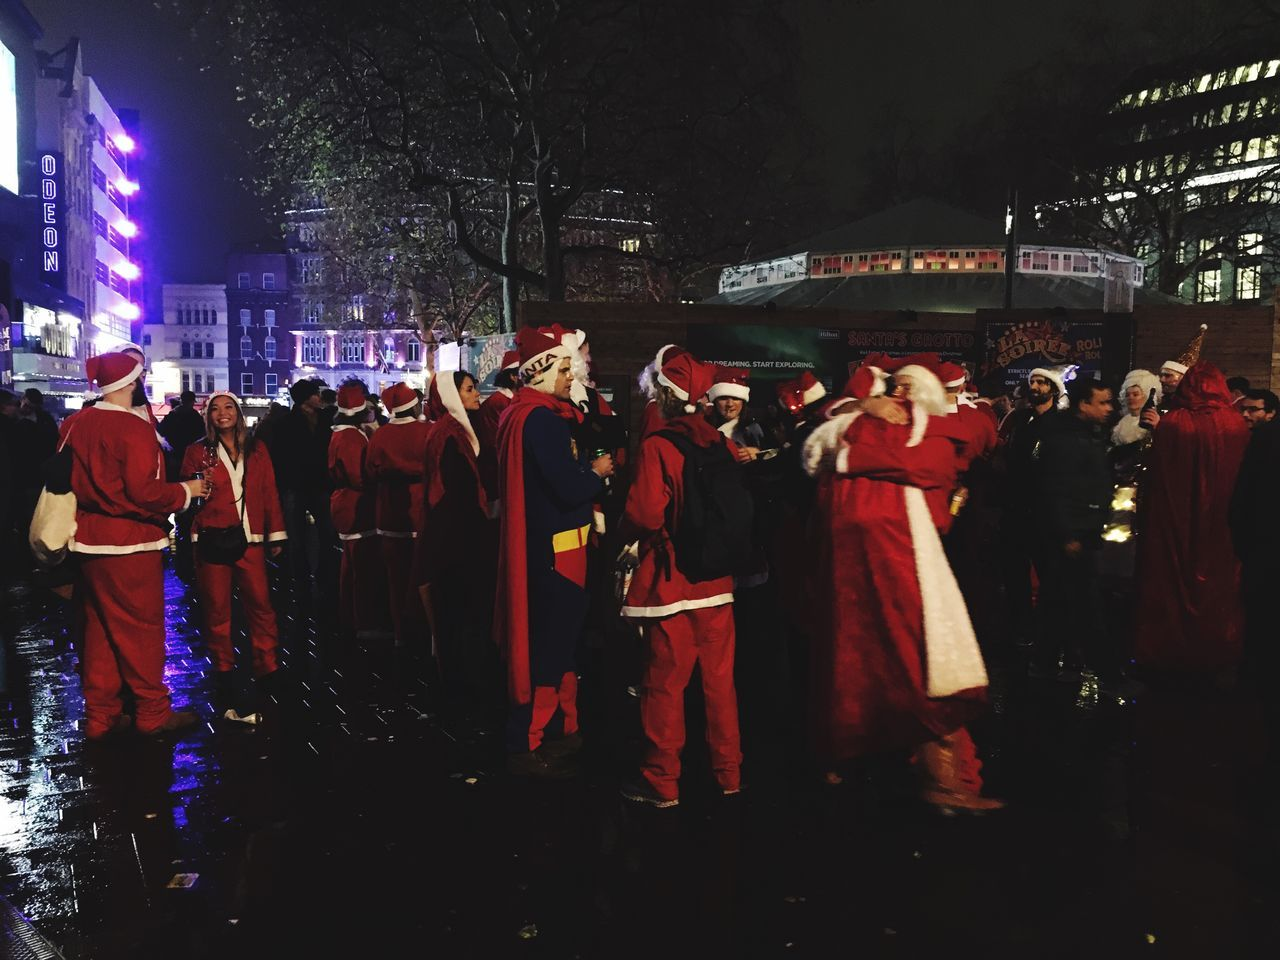 Drunk Santa Santa Father Christmas Leicester Square Christmas Time Festive Large Group Of People Night Outdoors Crowd Drinking Santacon